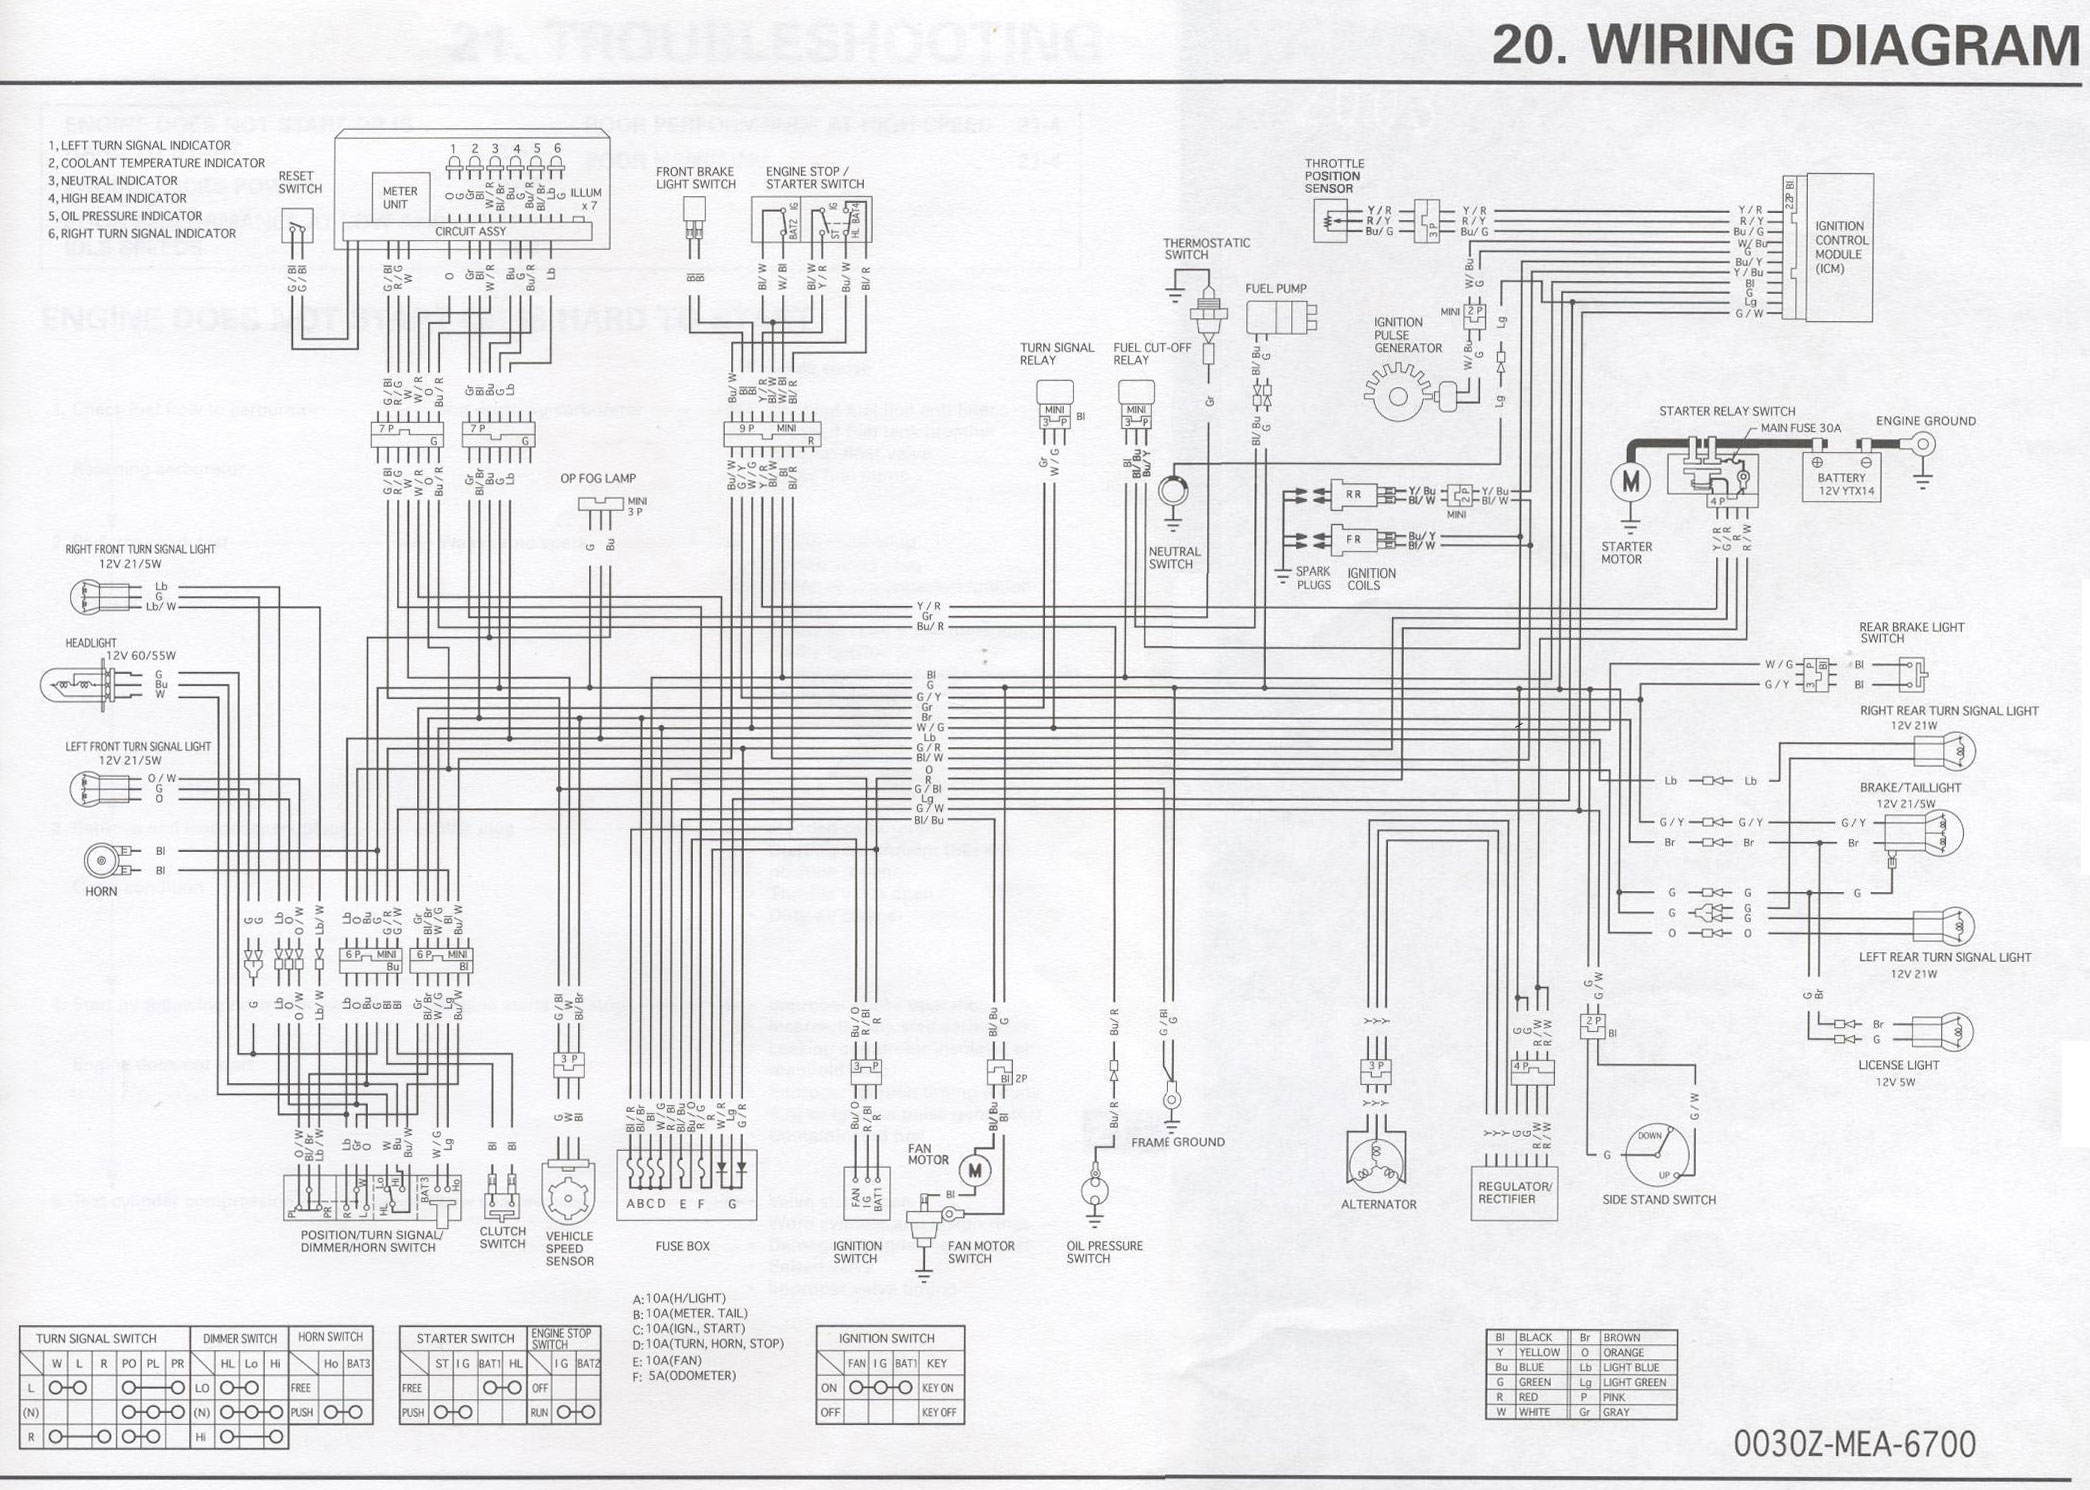 03_VTX1300_schematic motorcycle wire schematics bareass choppers motorcycle tech pages 2006 honda vtx 1300 wiring schematic at panicattacktreatment.co